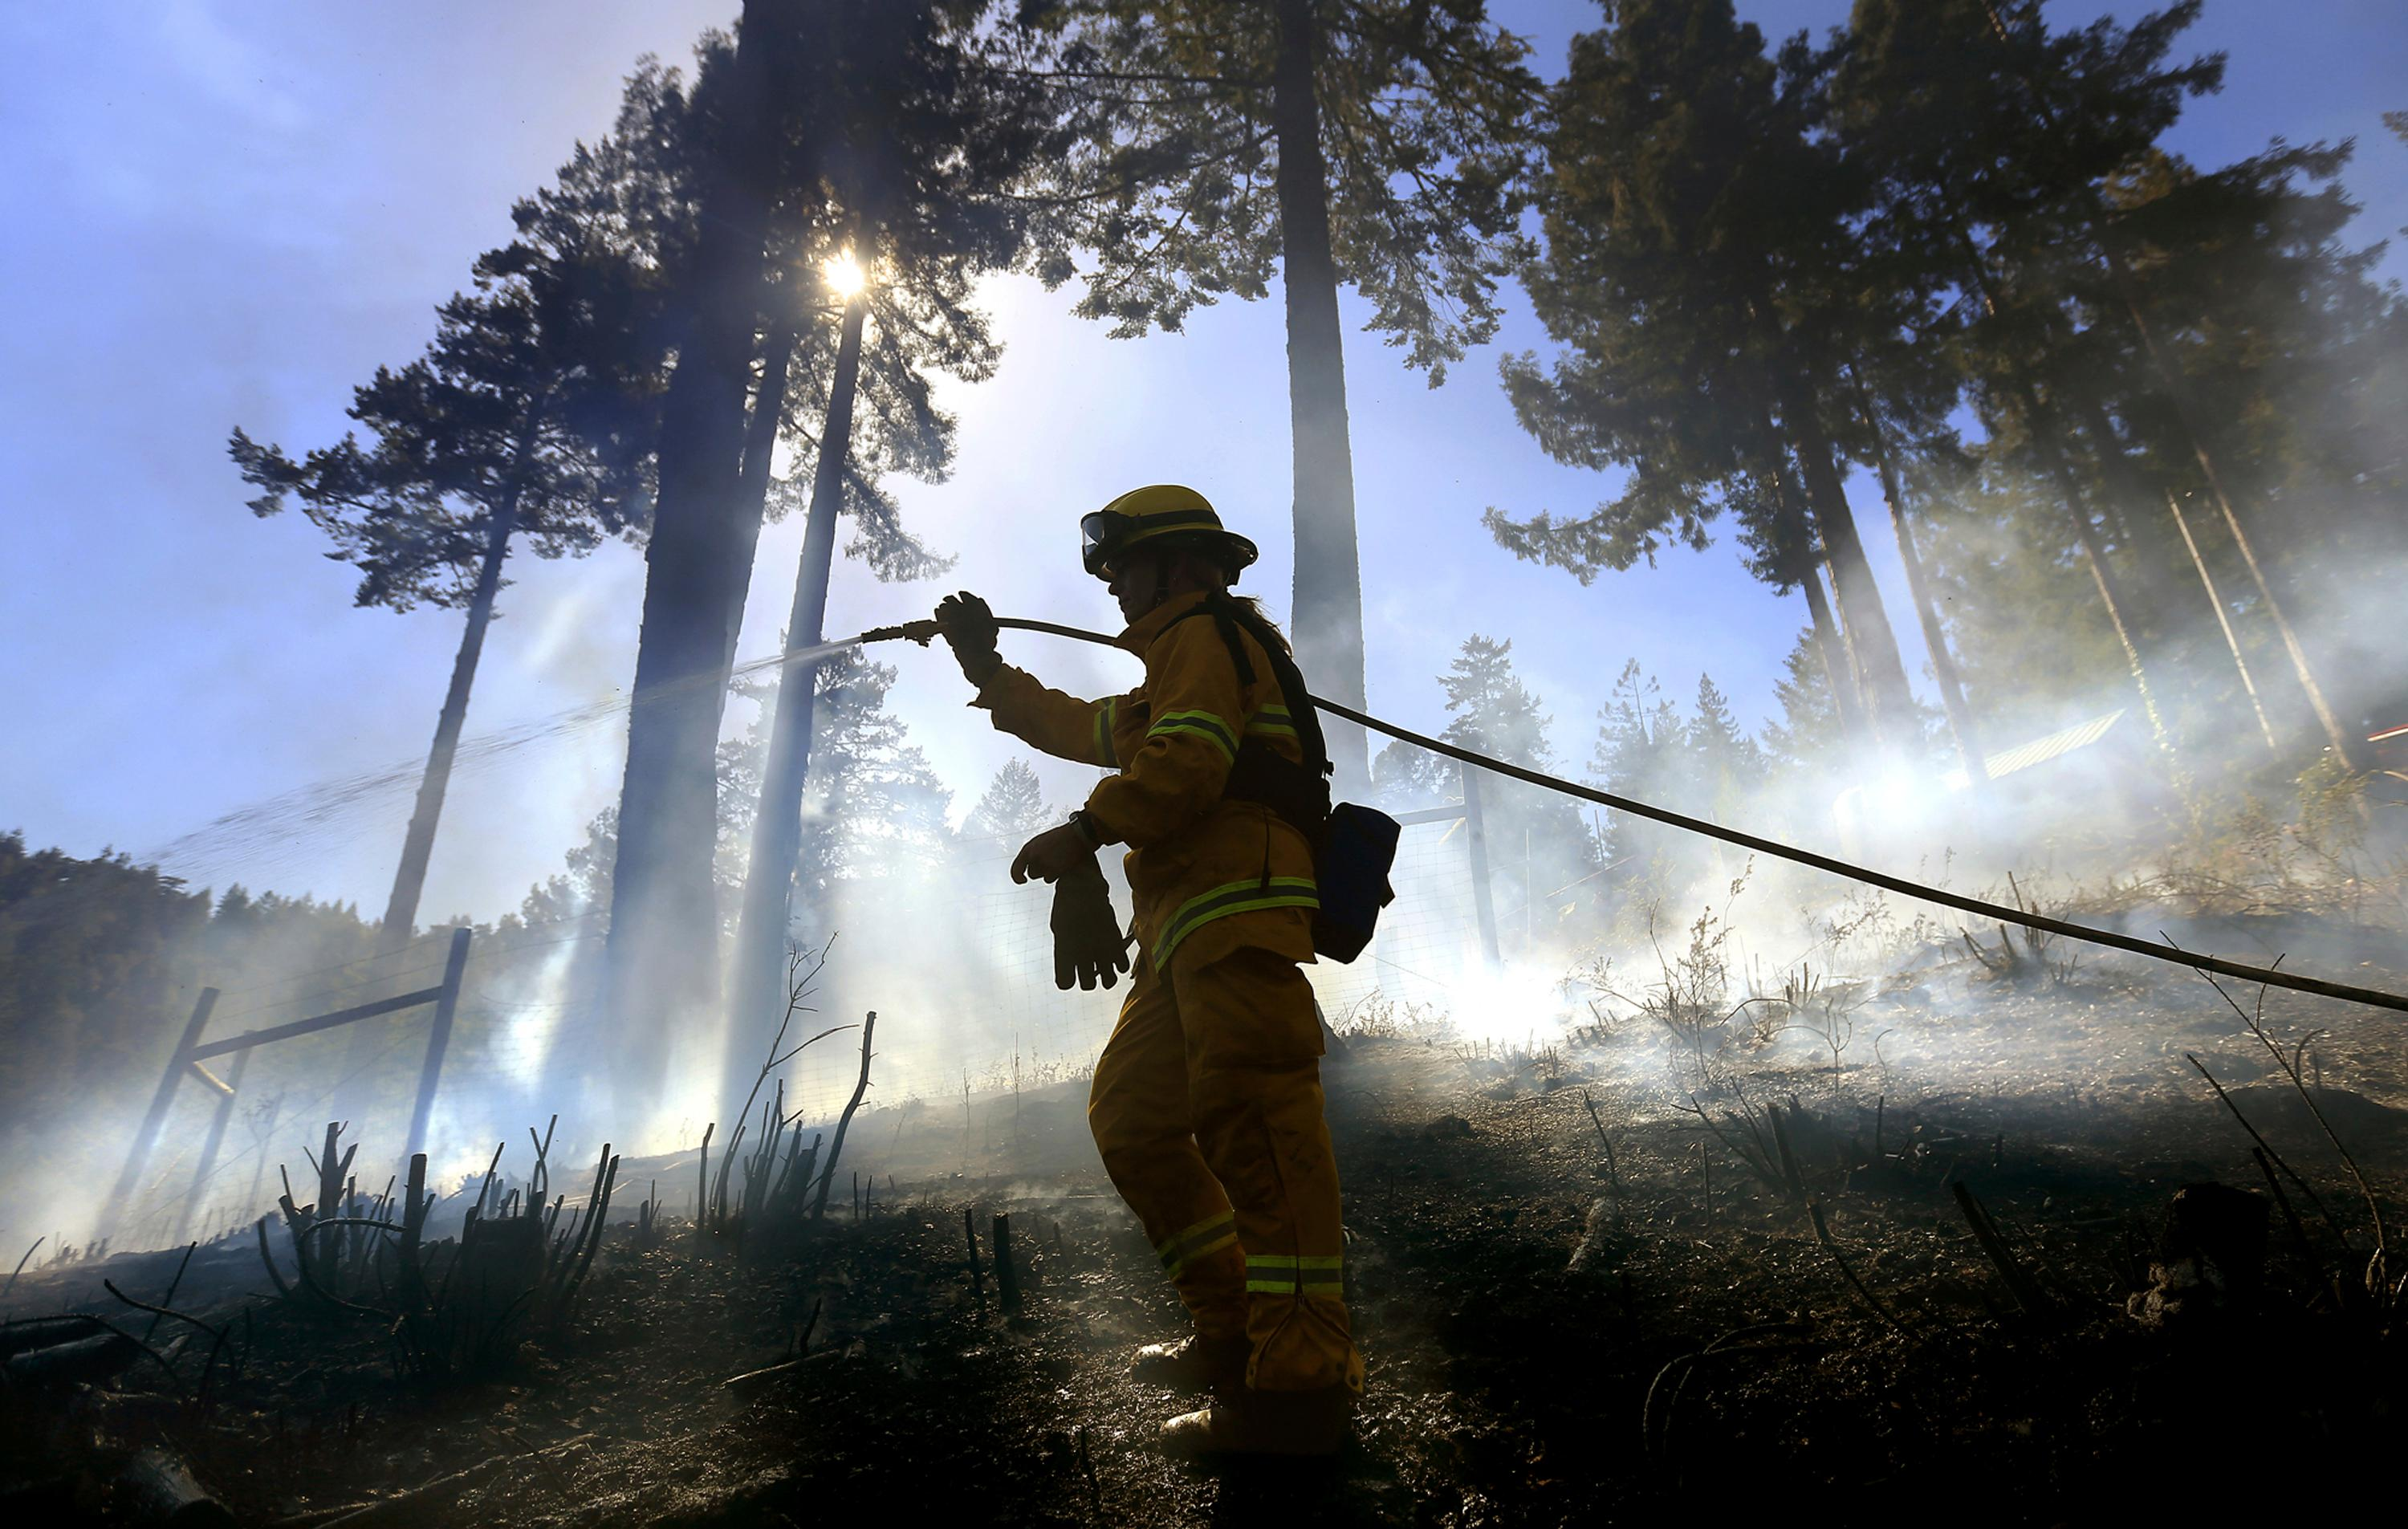 "FILE - In this April 10, 2015 file photo, Monte Rio volunteer firefighter Gabriela Gibson sprays down hot spots on a half-acre fire in timber above Monte Rio, Calif., after a controlled burn crossed containment lines and wind blew embers in to the timber.  California's seemingly endless cycle of wildfires is helping drive plans to do more ""controlled burns"" that thin forests choked with dead trees and withered underbrush that if left unchecked can feed monster blazes that force entire communities to flee, destroy homes and take lives. The goal for 2018 is to burn at least 20,000 acres and to clear another 20,000 by crews using chain saws, bulldozers and other machinery. (Kent Porter/Santa Rosa Press Democrat via AP, File)"